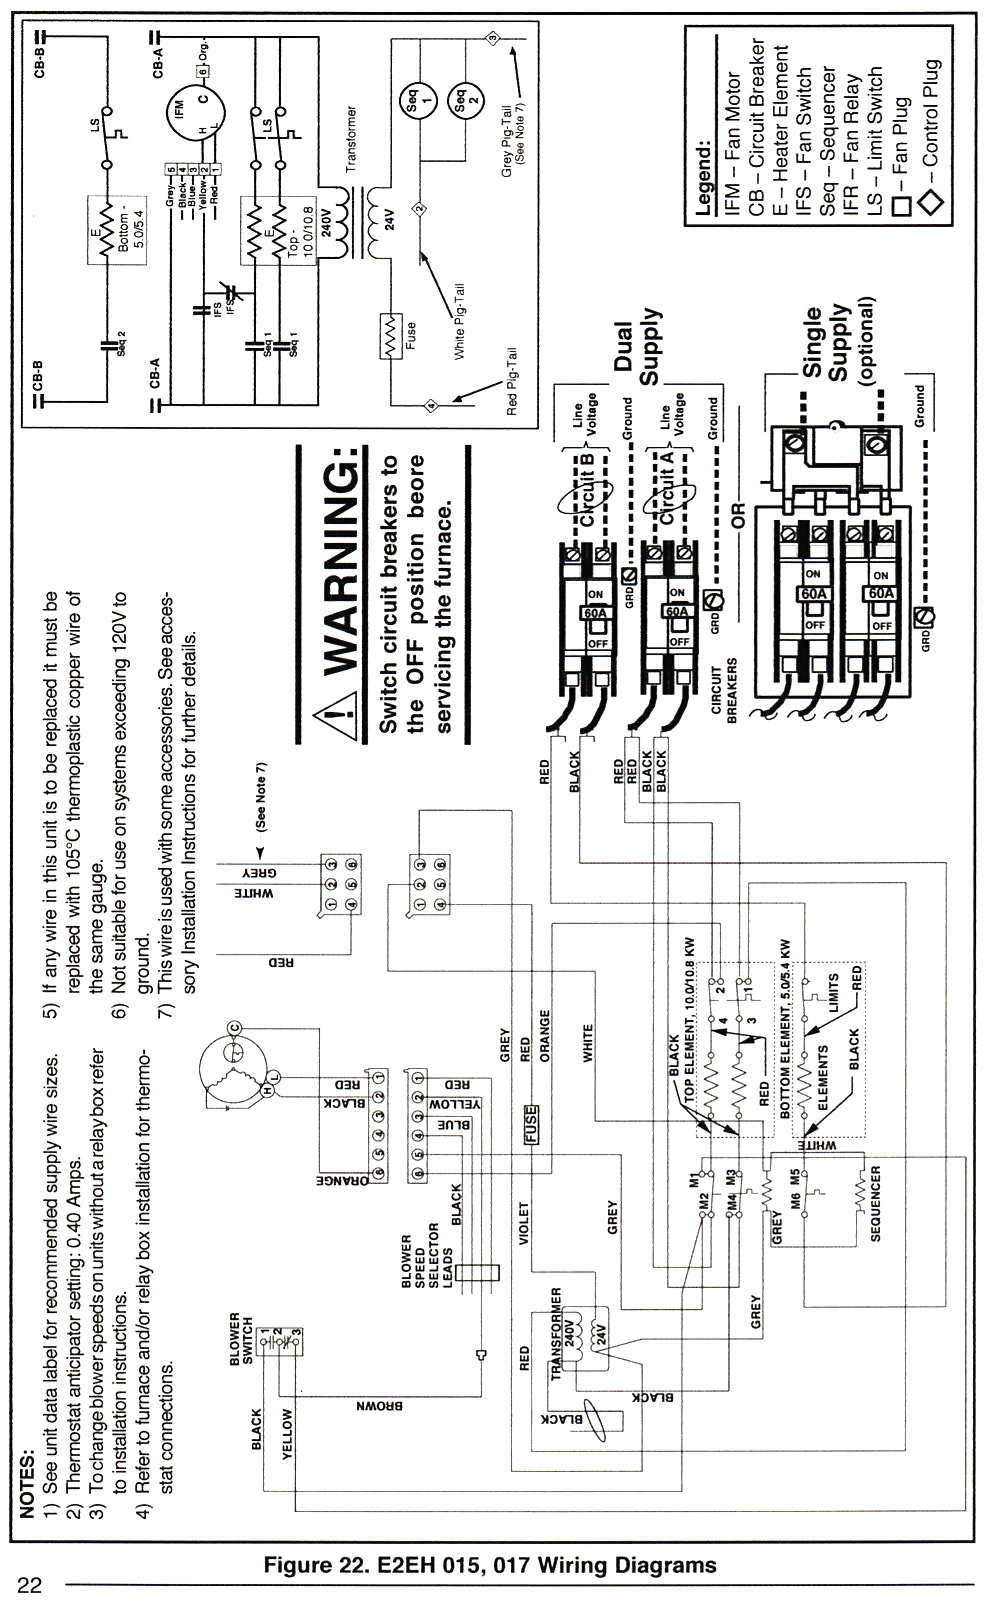 Fedders Furnace Wiring Diagram | Wiring Diagram on